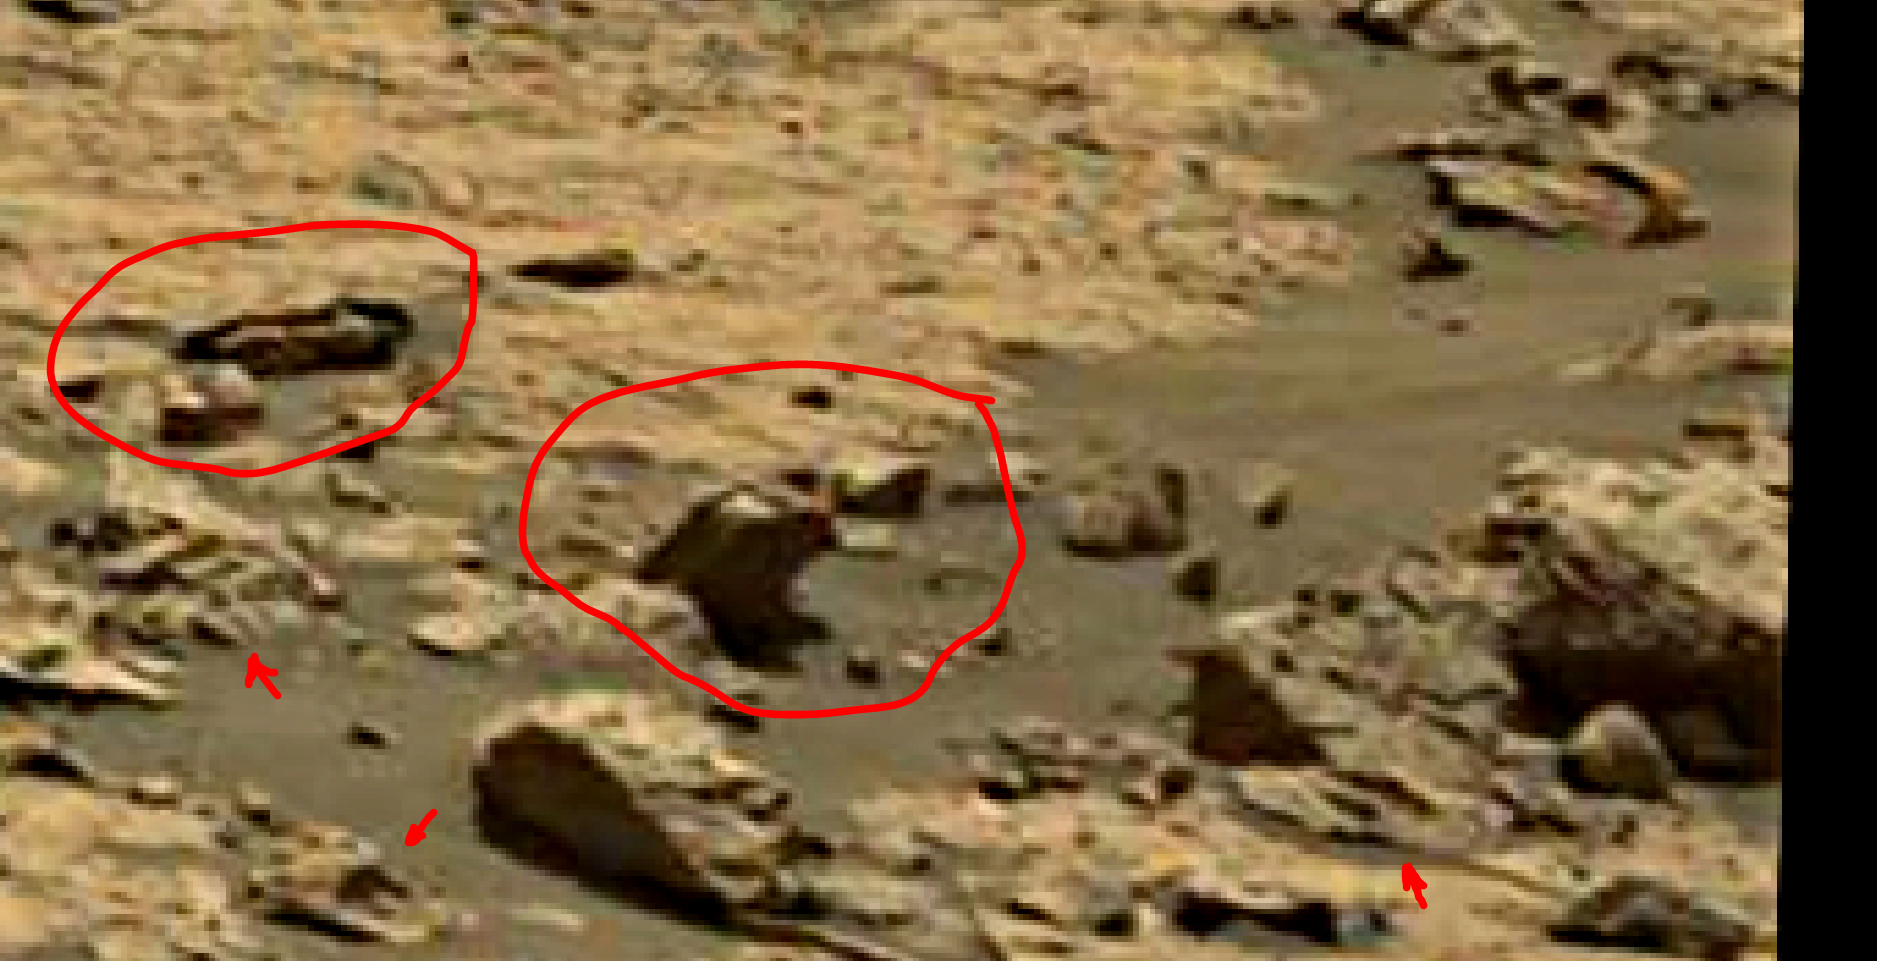 mars sol 1438 anomaly artifacts 4 was life on mars